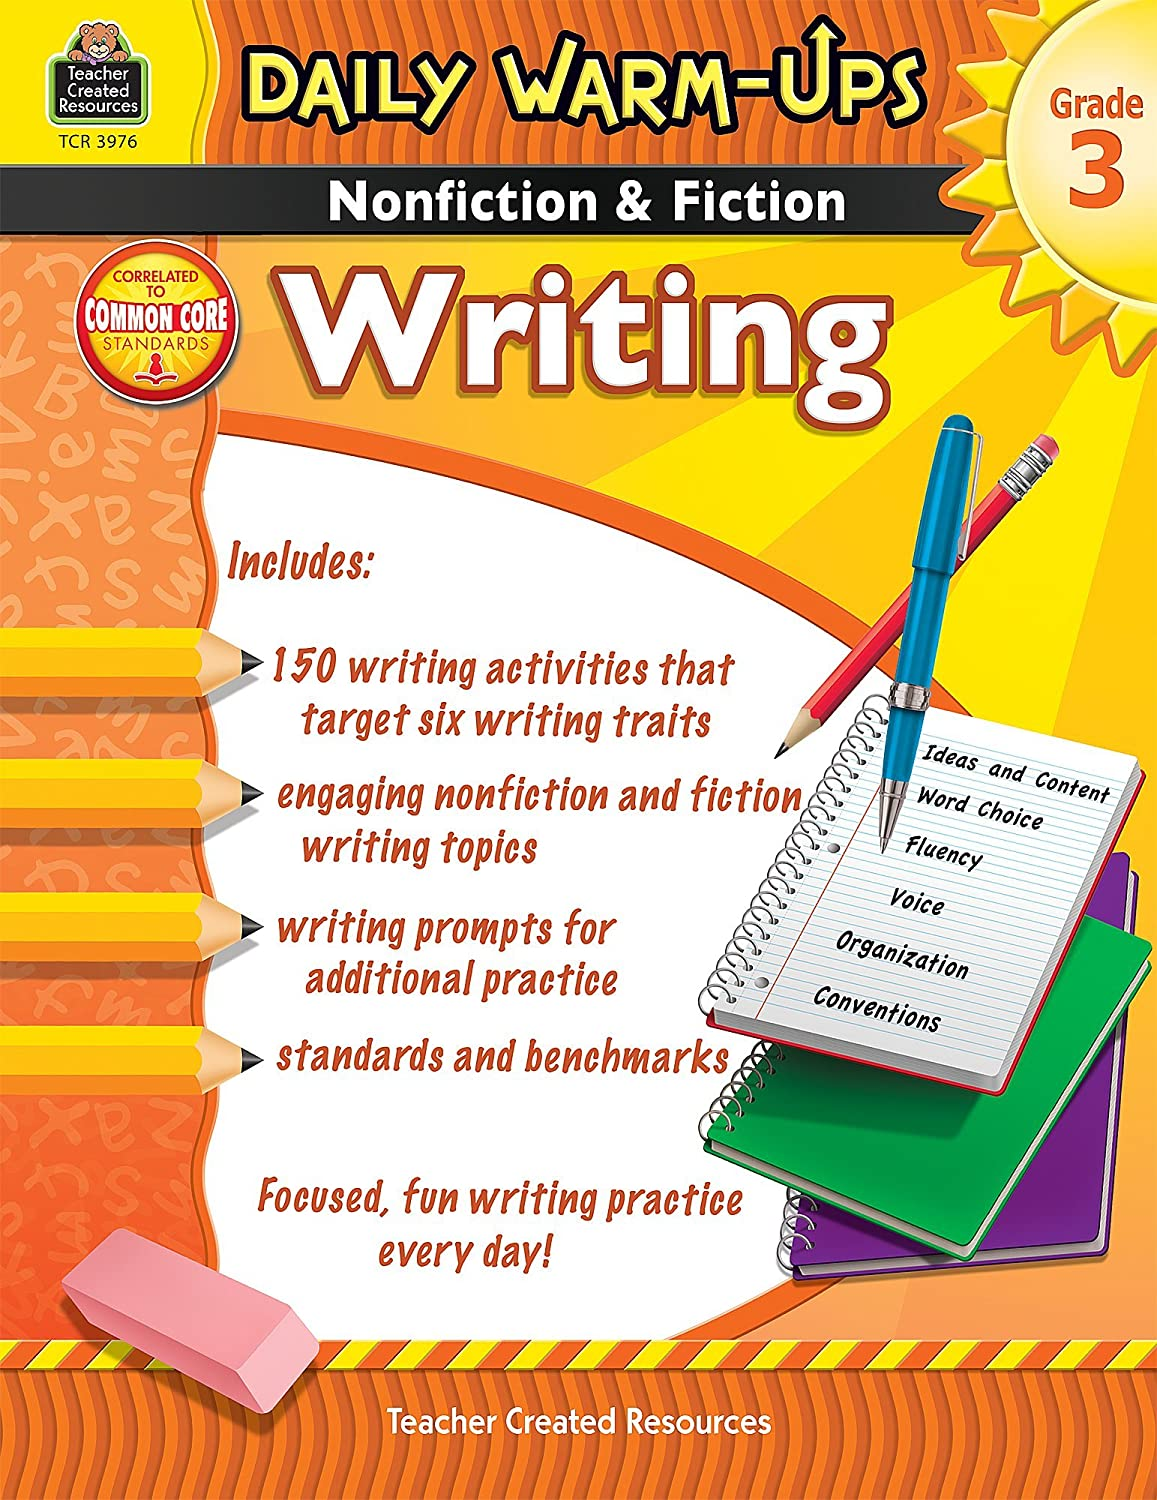 Daily Warm-Ups: Nonfiction & Fiction Writing Grd 3: Nonfiction & Fiction Writing Grd 3